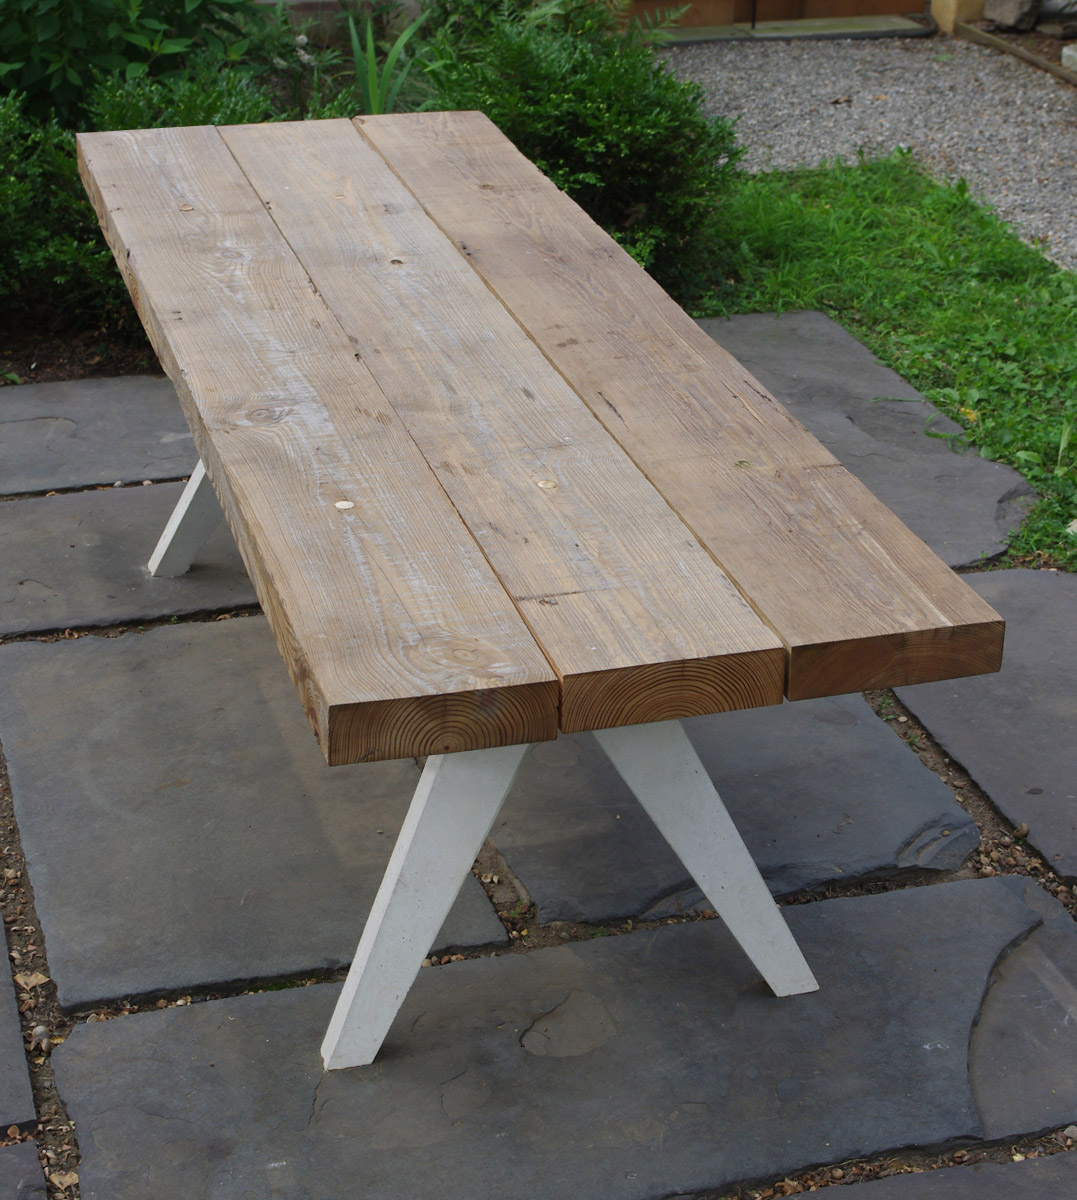 Picnic Table v1 - 4.jpg